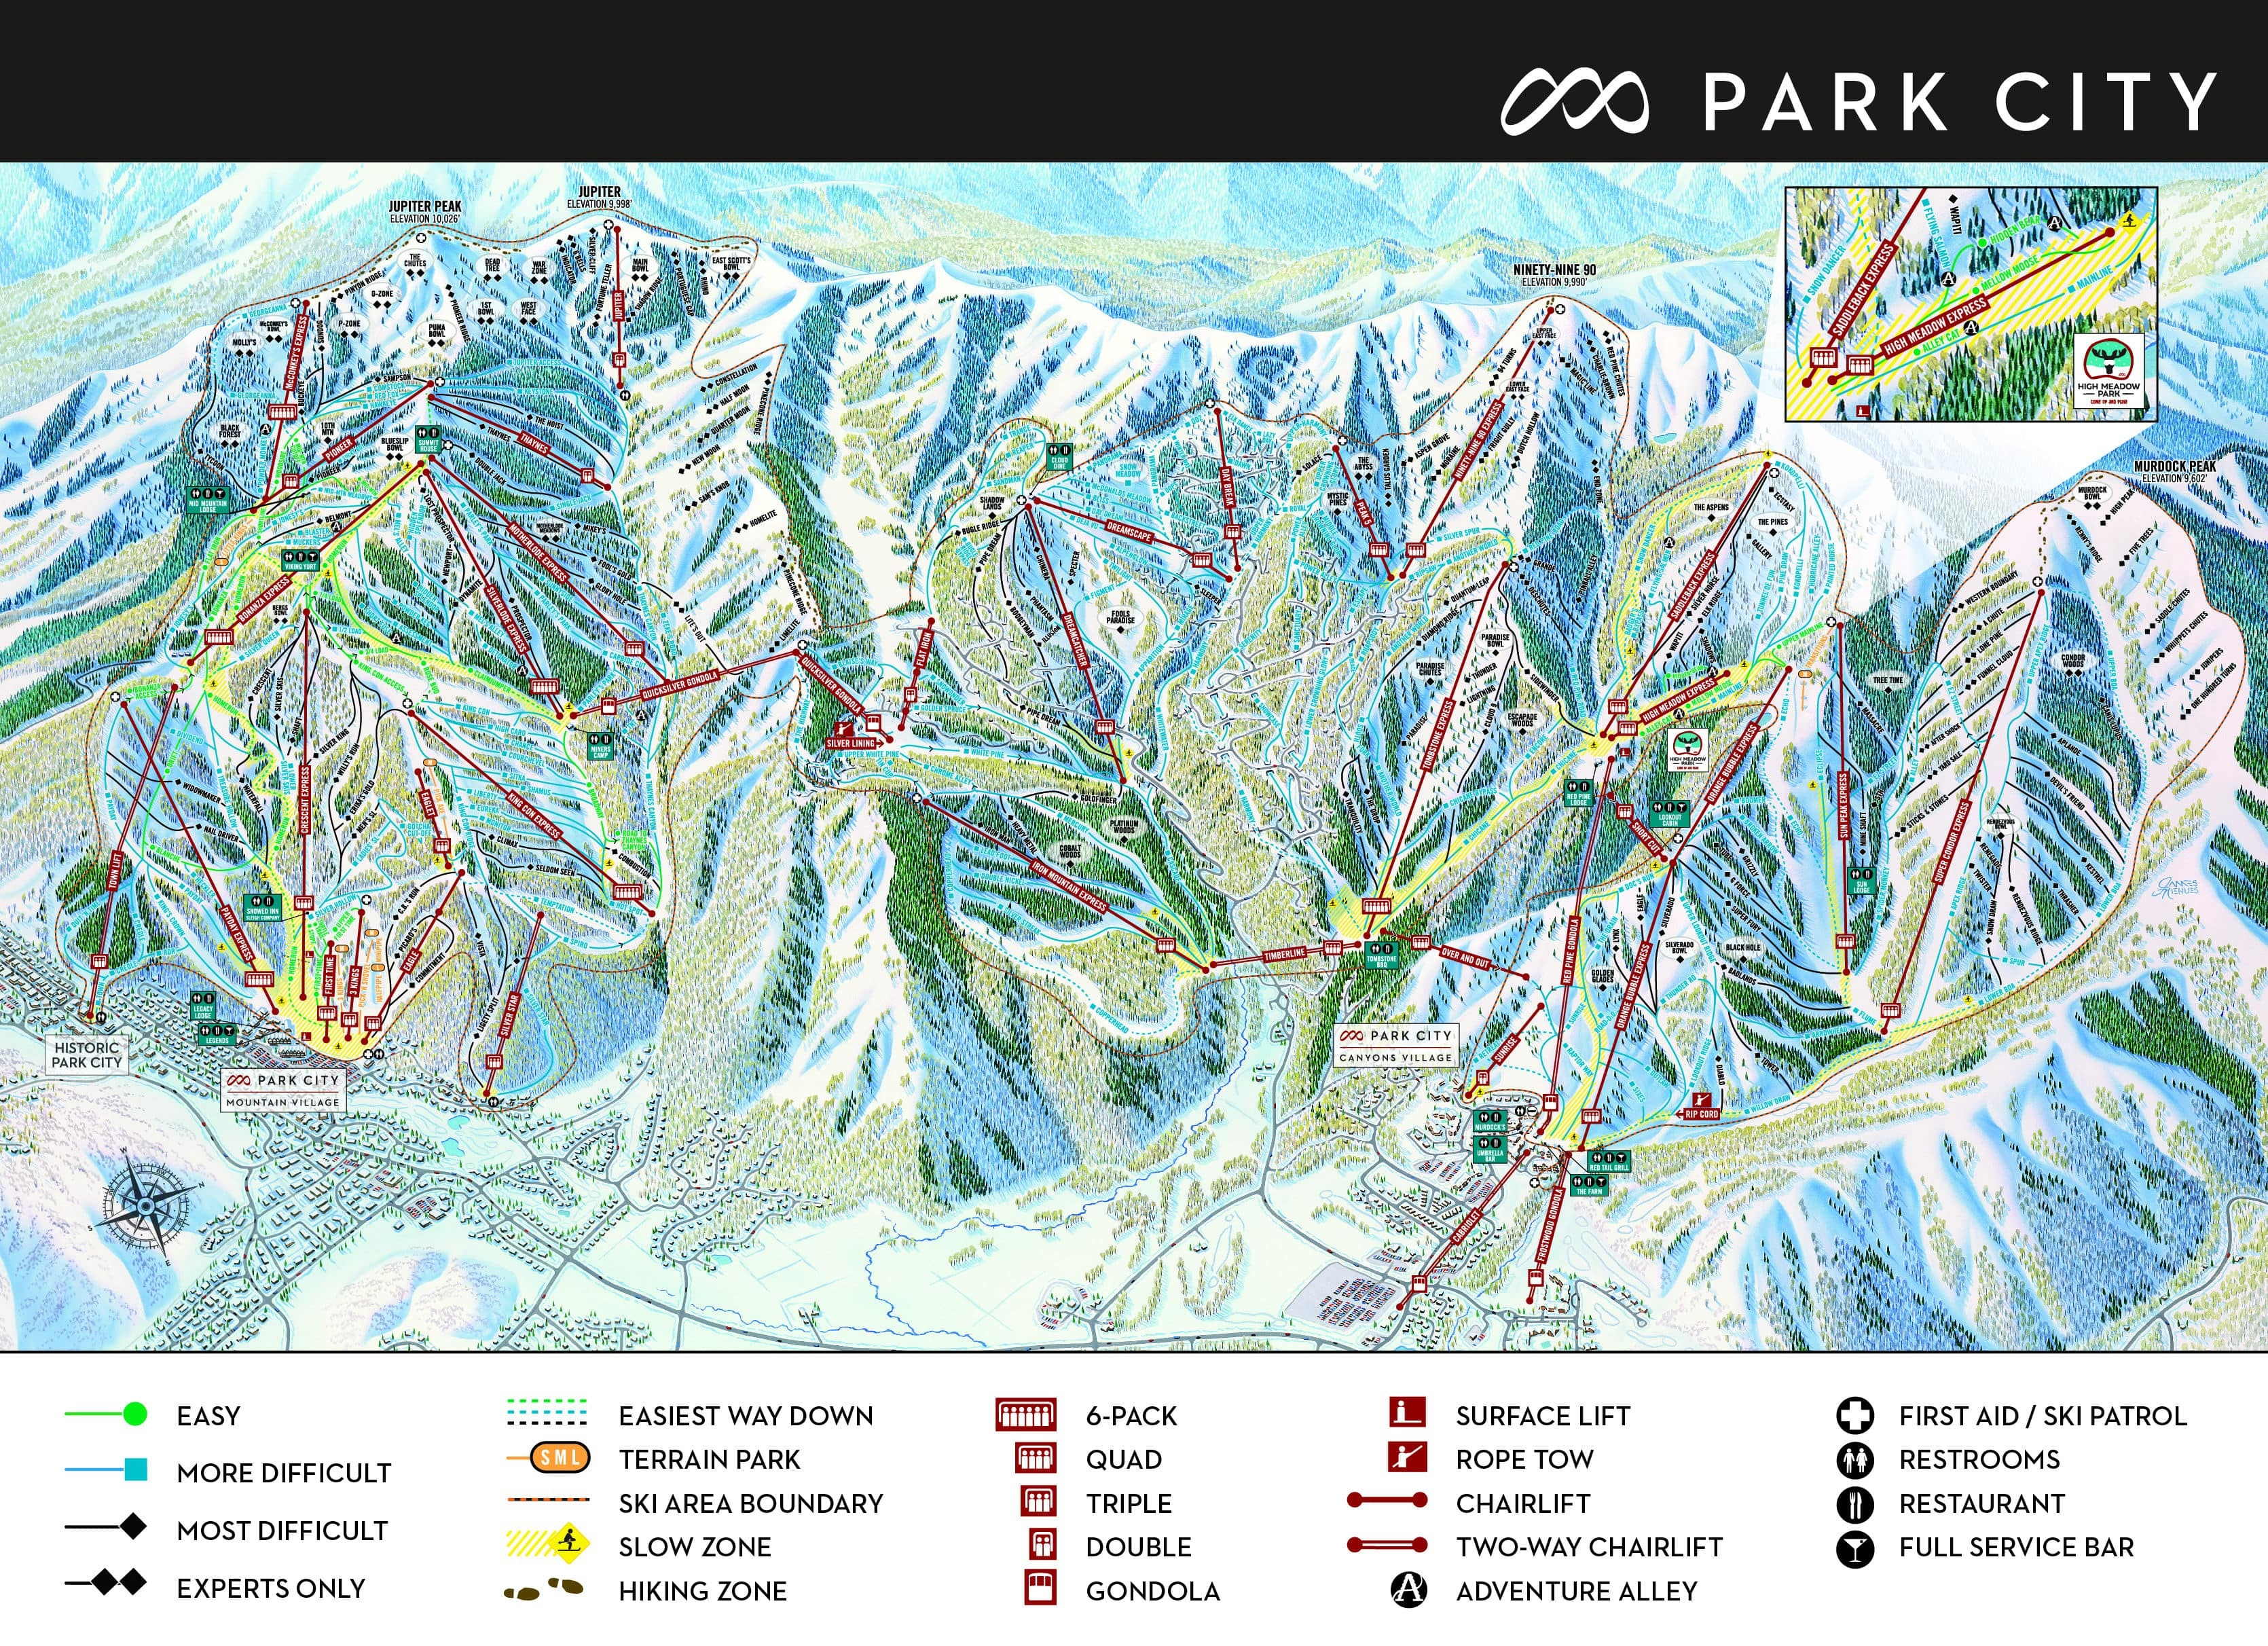 Park City Resort Map Park City Ski Resort Guide, Location Map & Park City ski holiday  Park City Resort Map